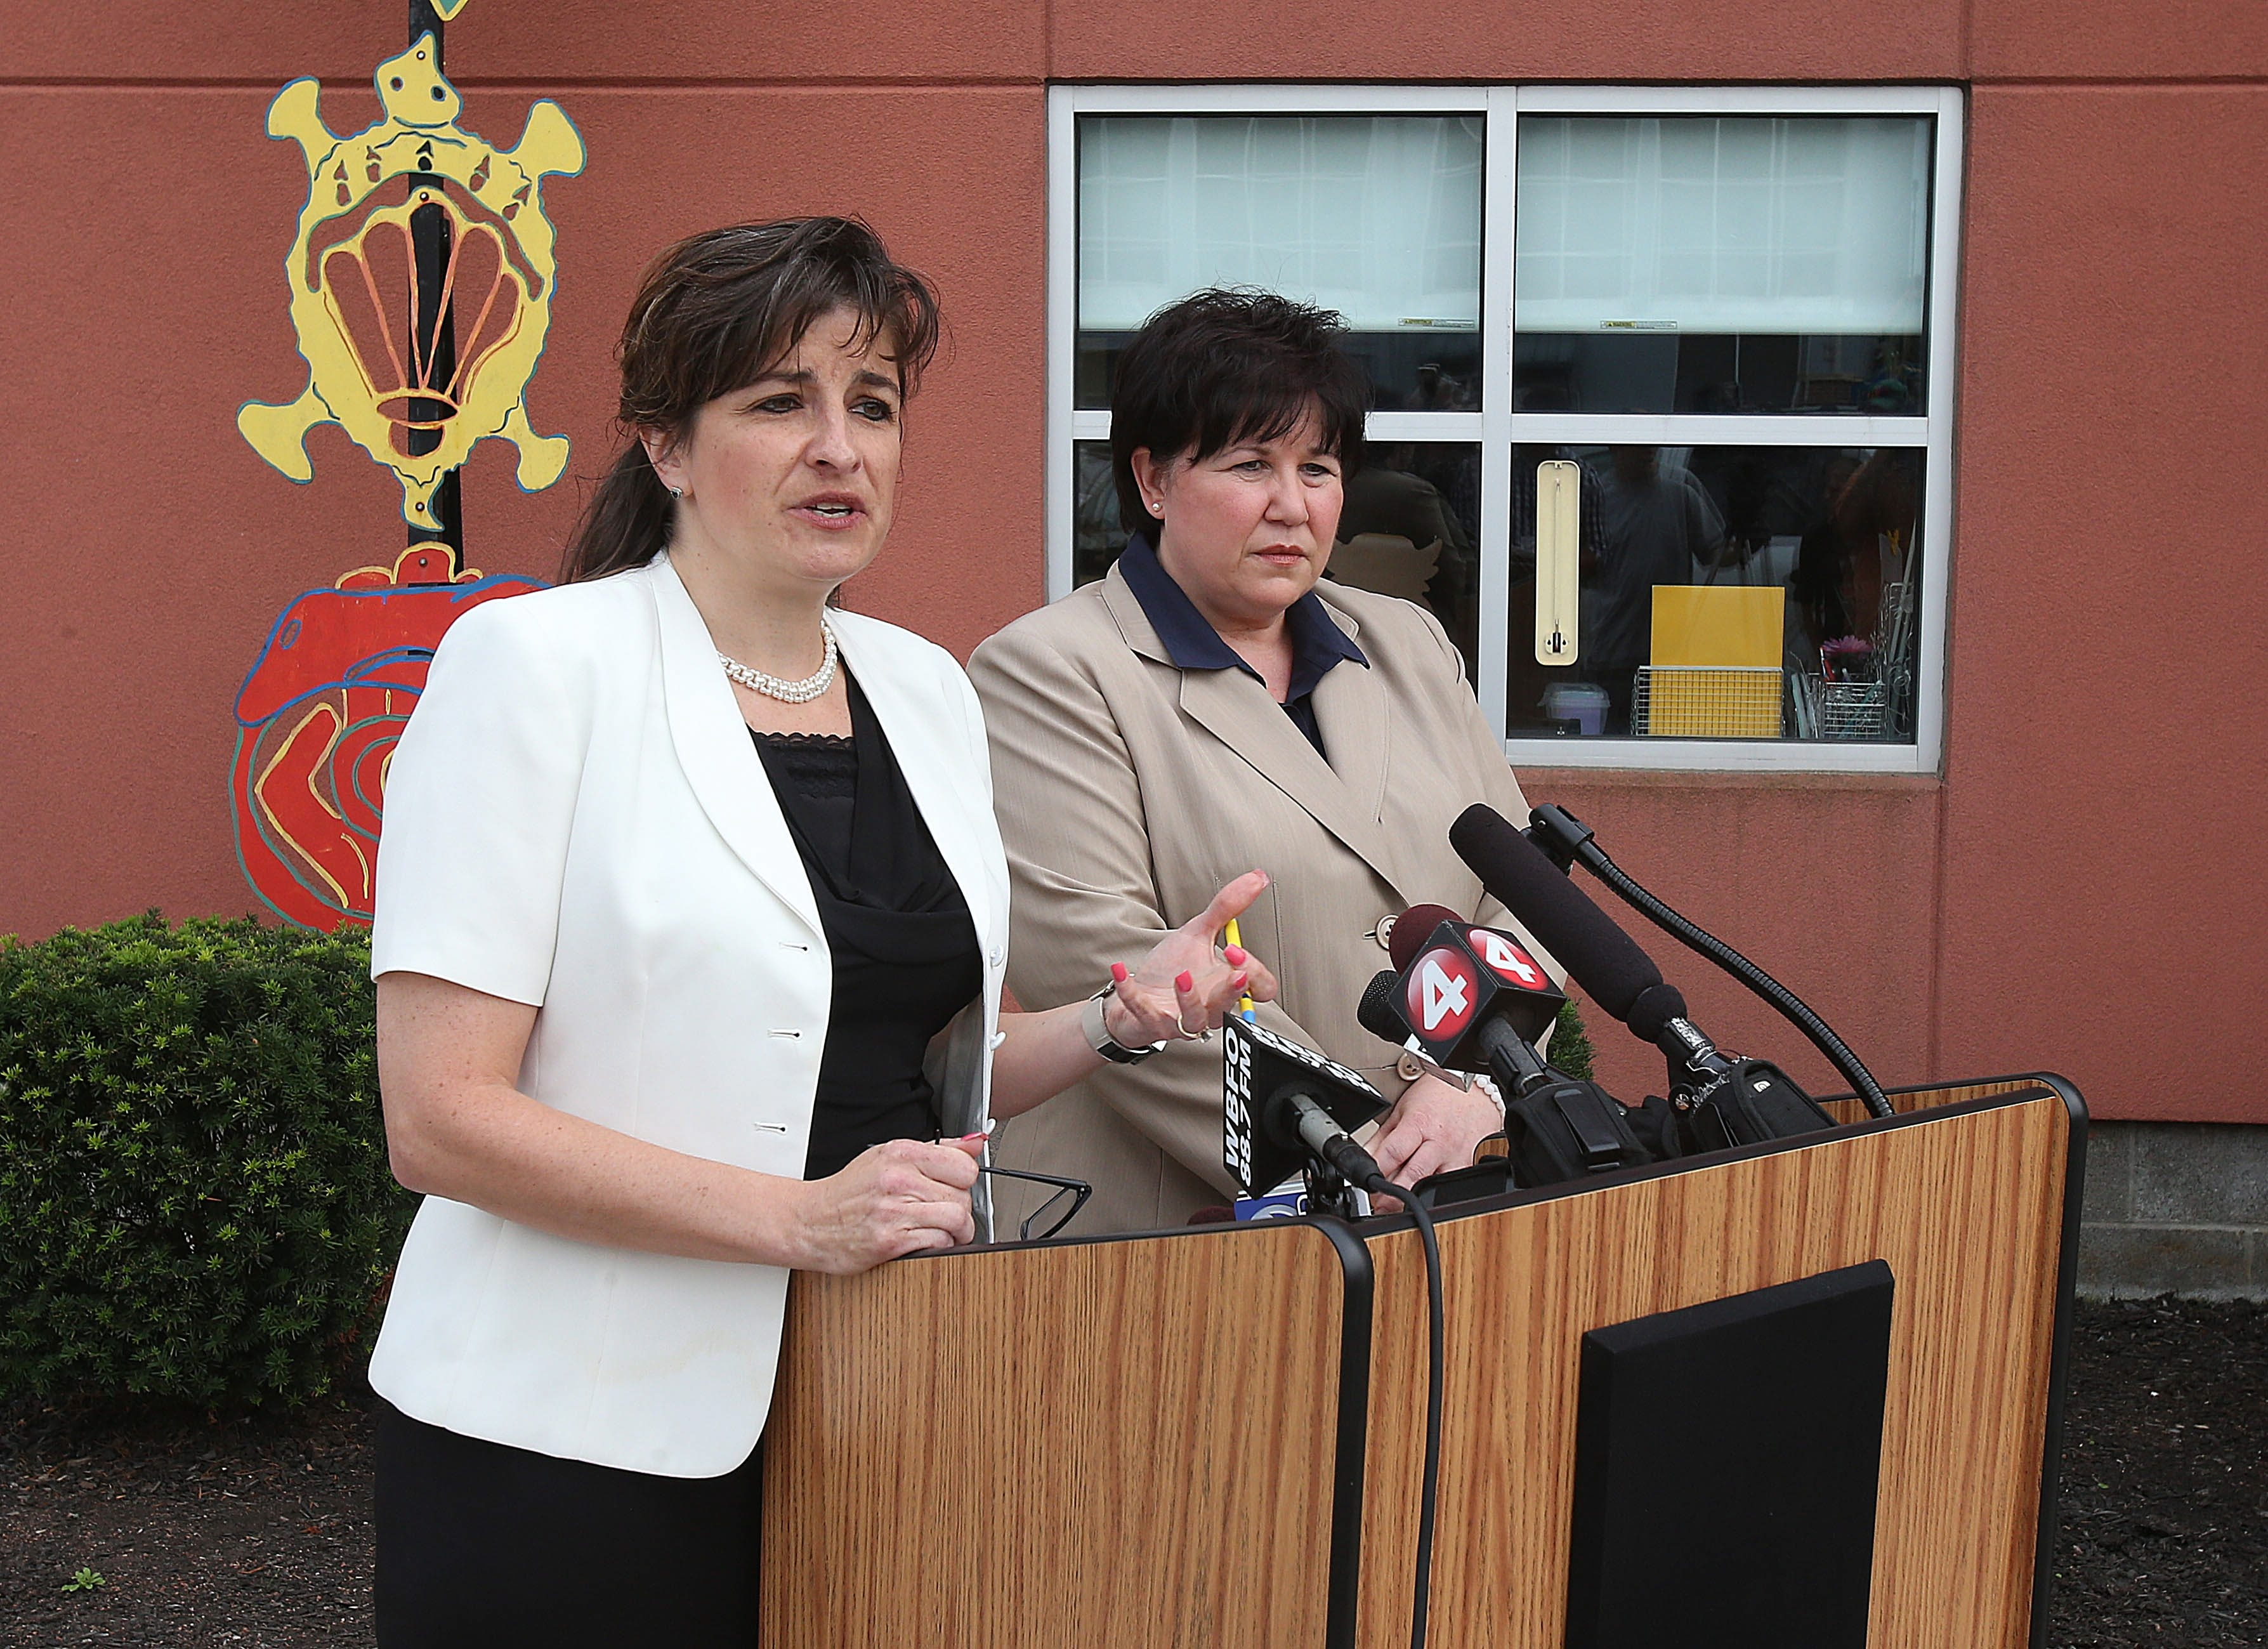 Pinnacle's Chief Academic Officer Linda Marszalek, left, and attorney Lisa Coppola cite student progress and are working to try and keep the school open.